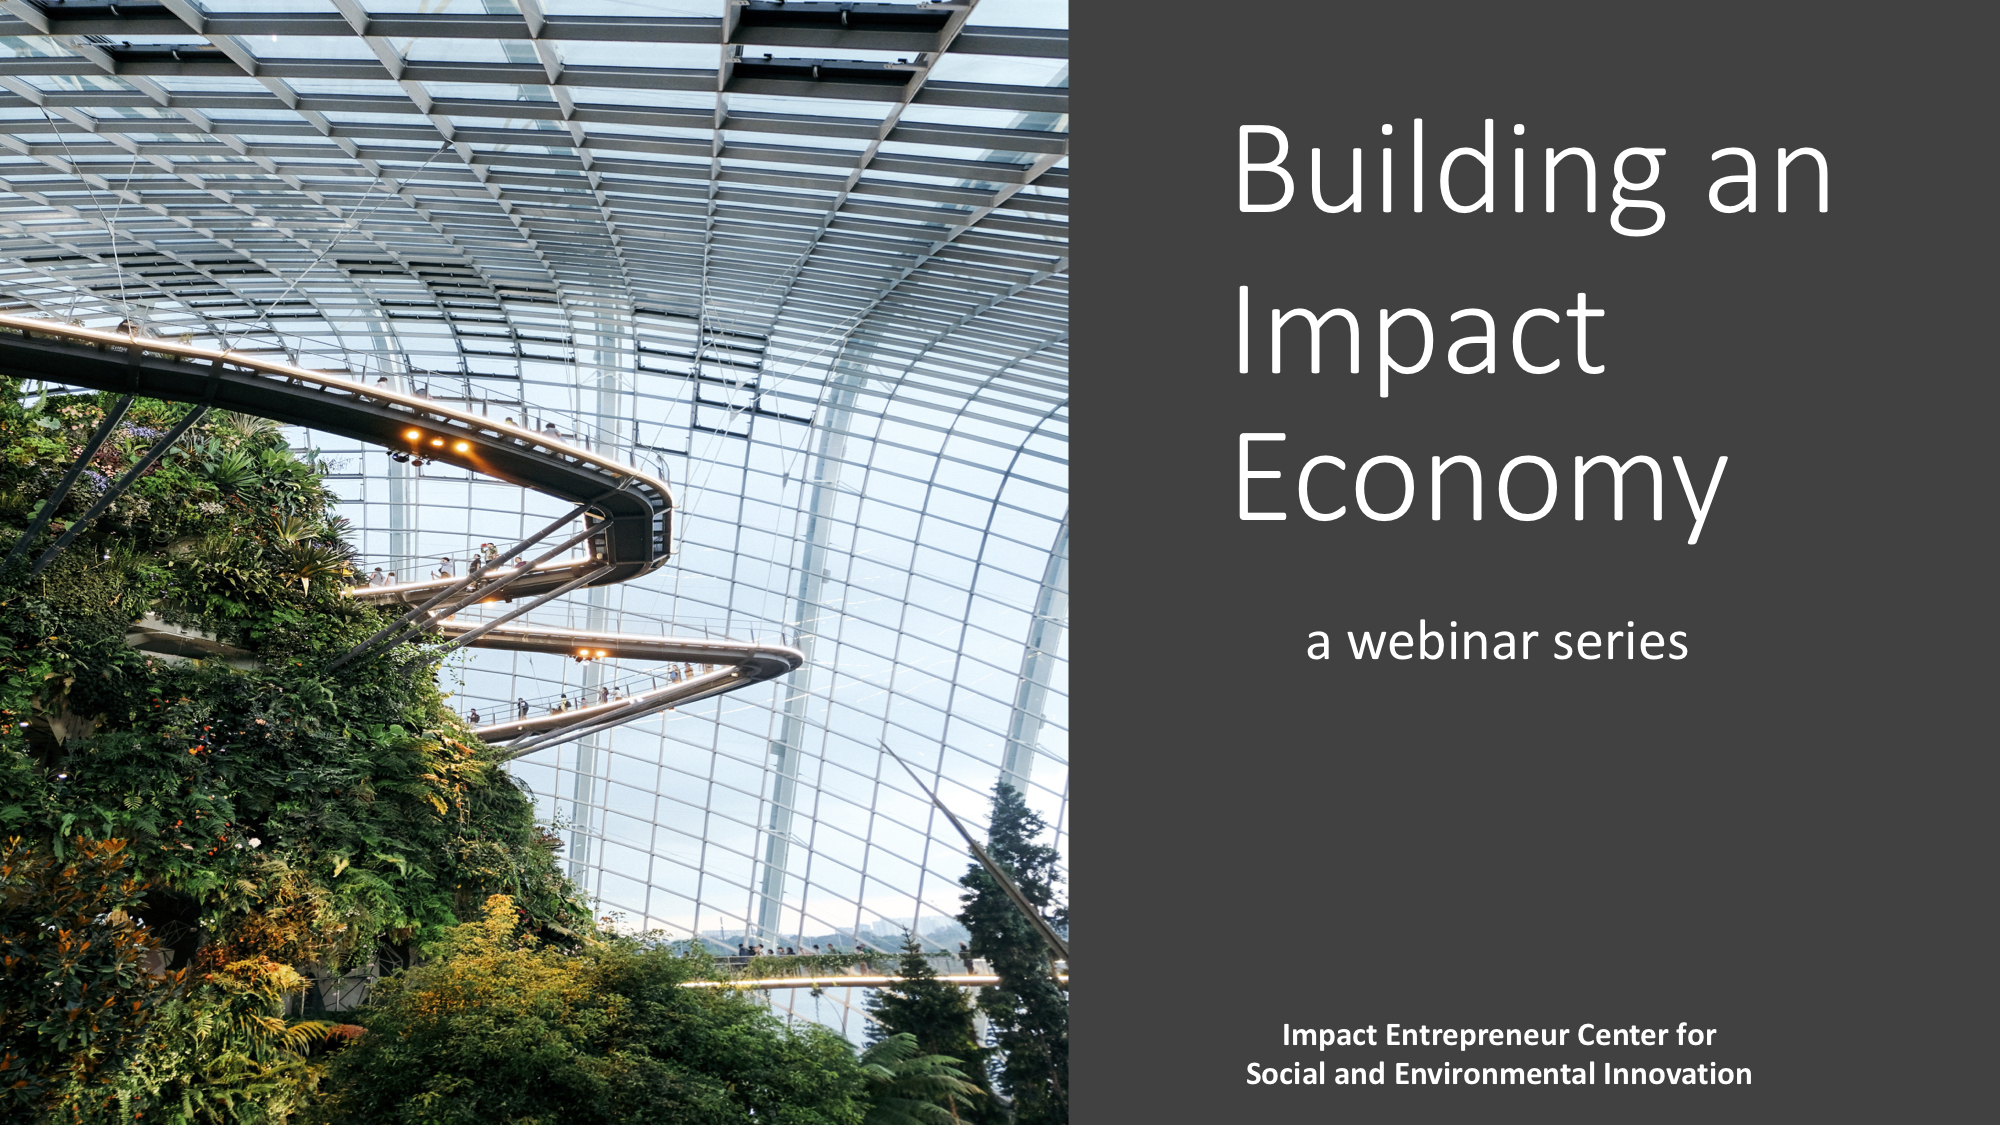 Building and Impact Economy Lead Image.jpg